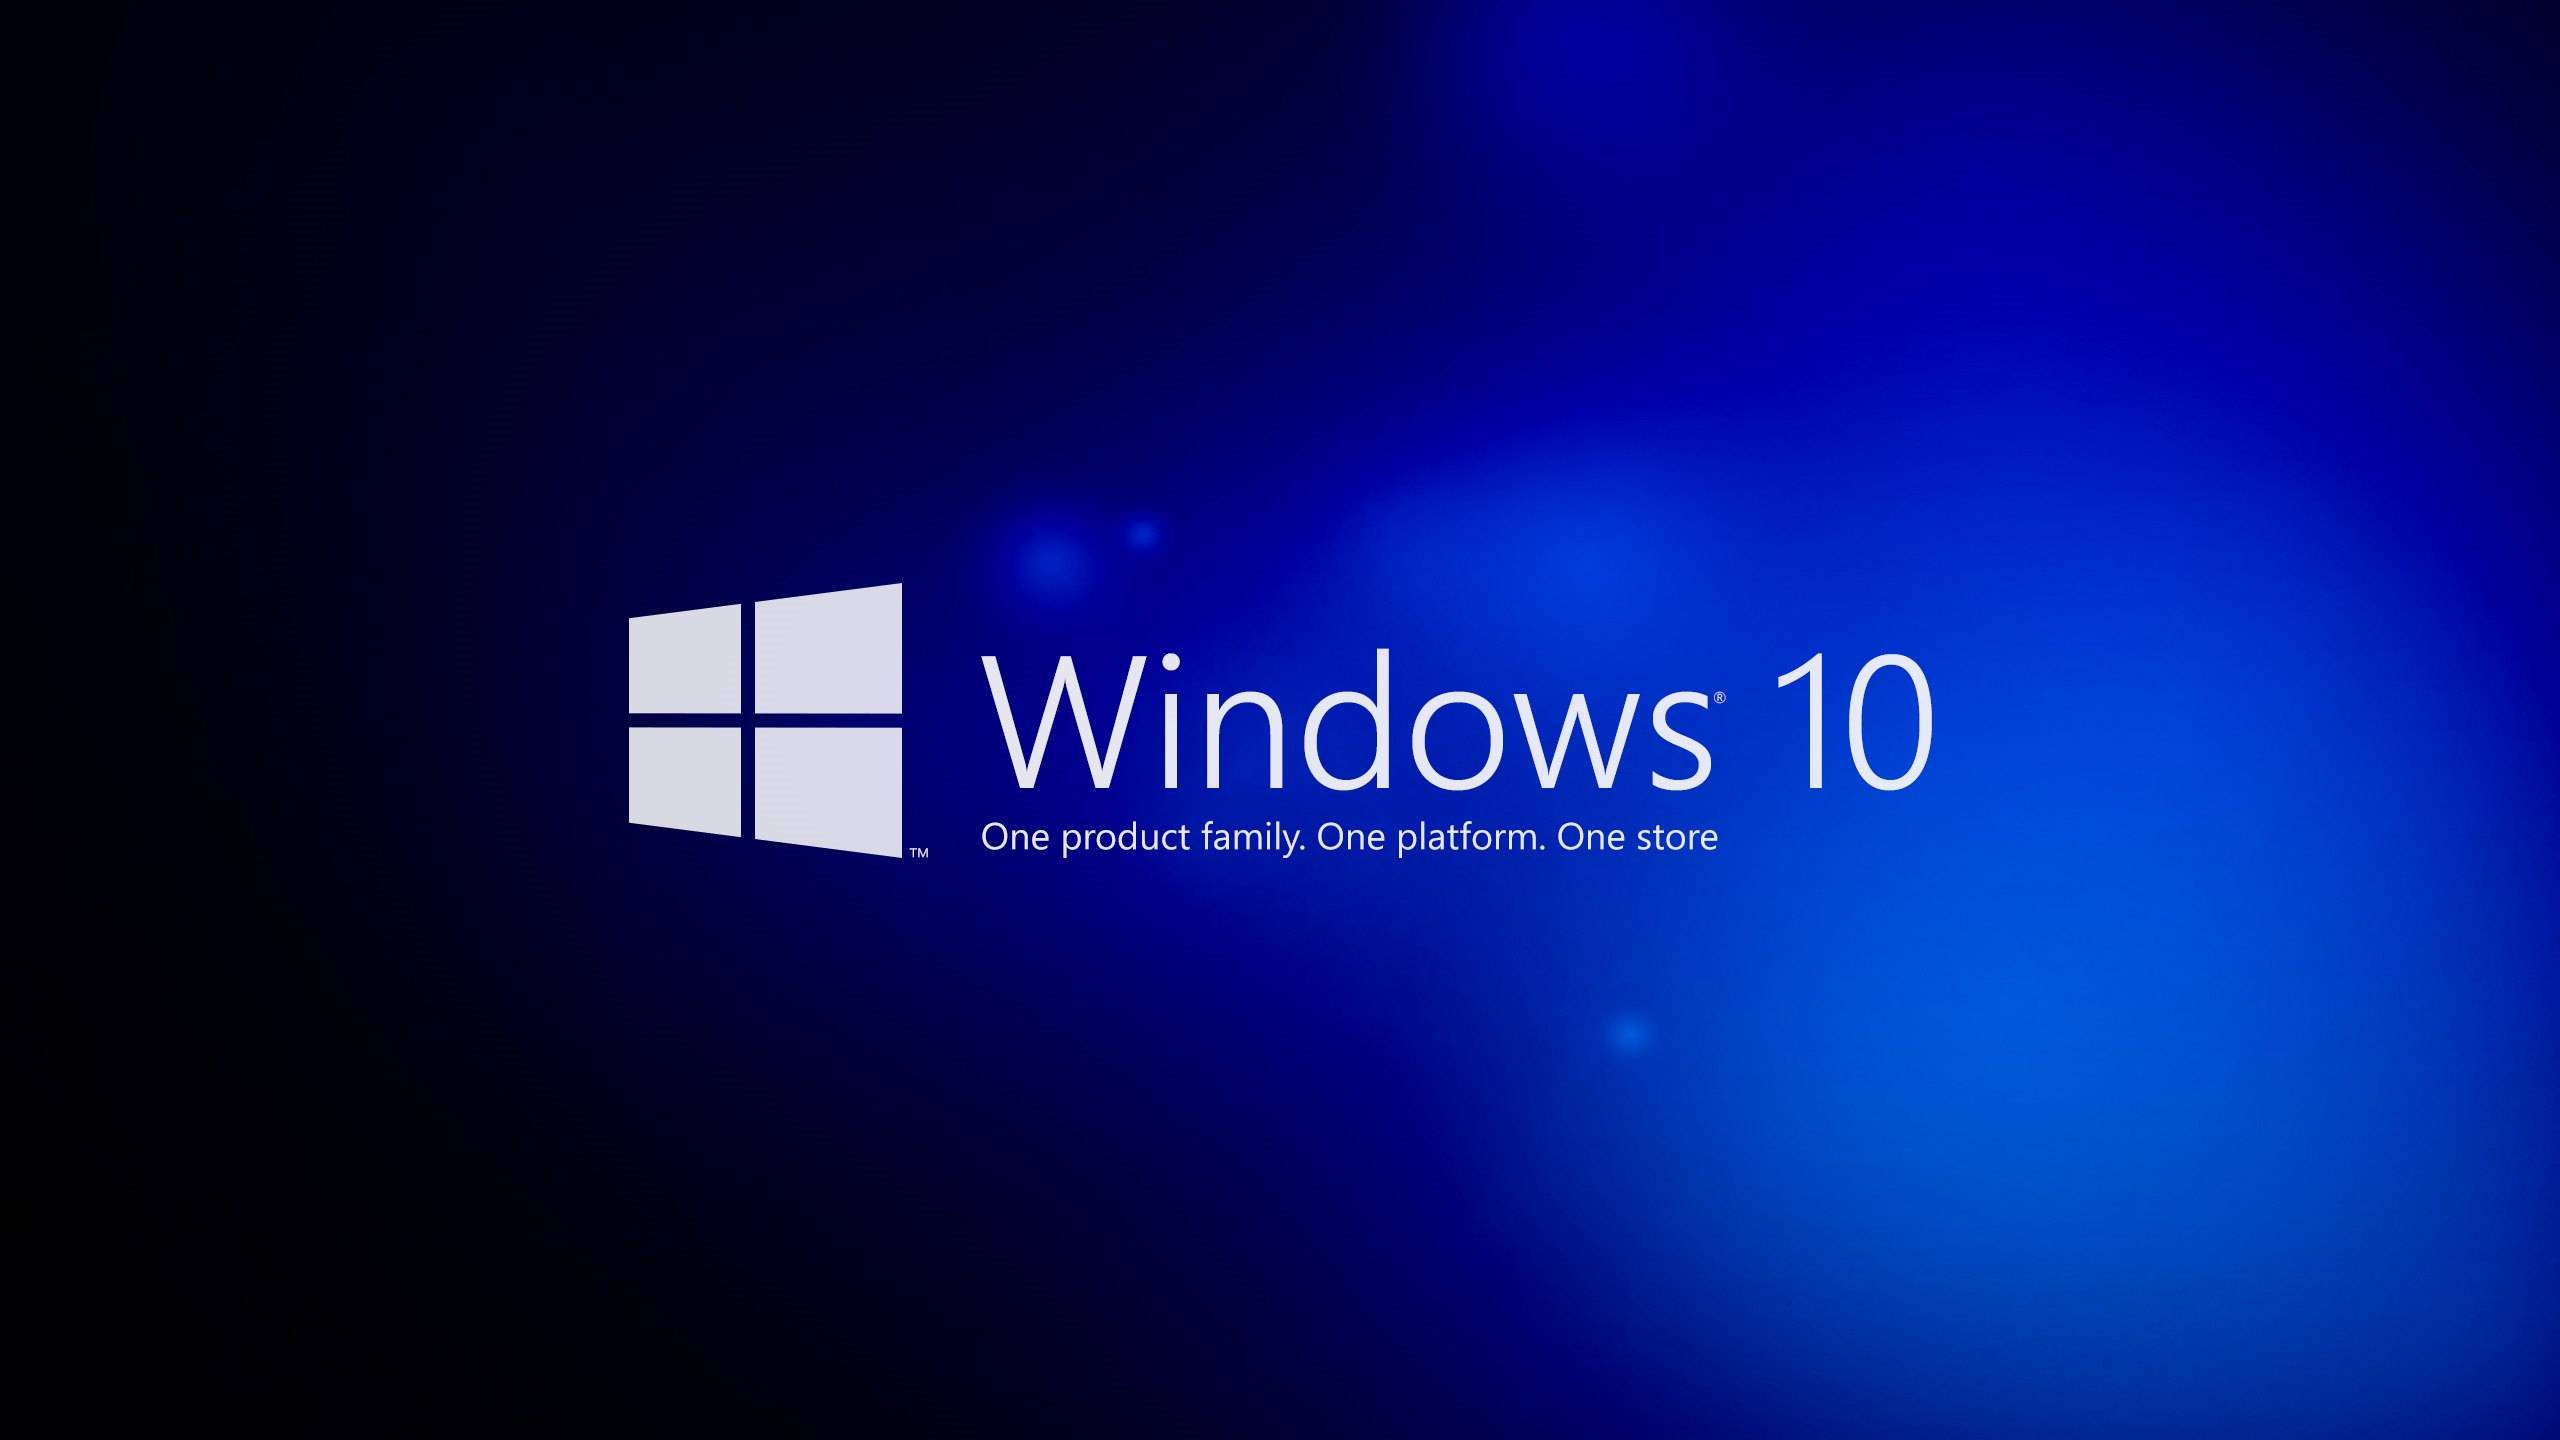 Windows-10-HD-Wallpaper-27